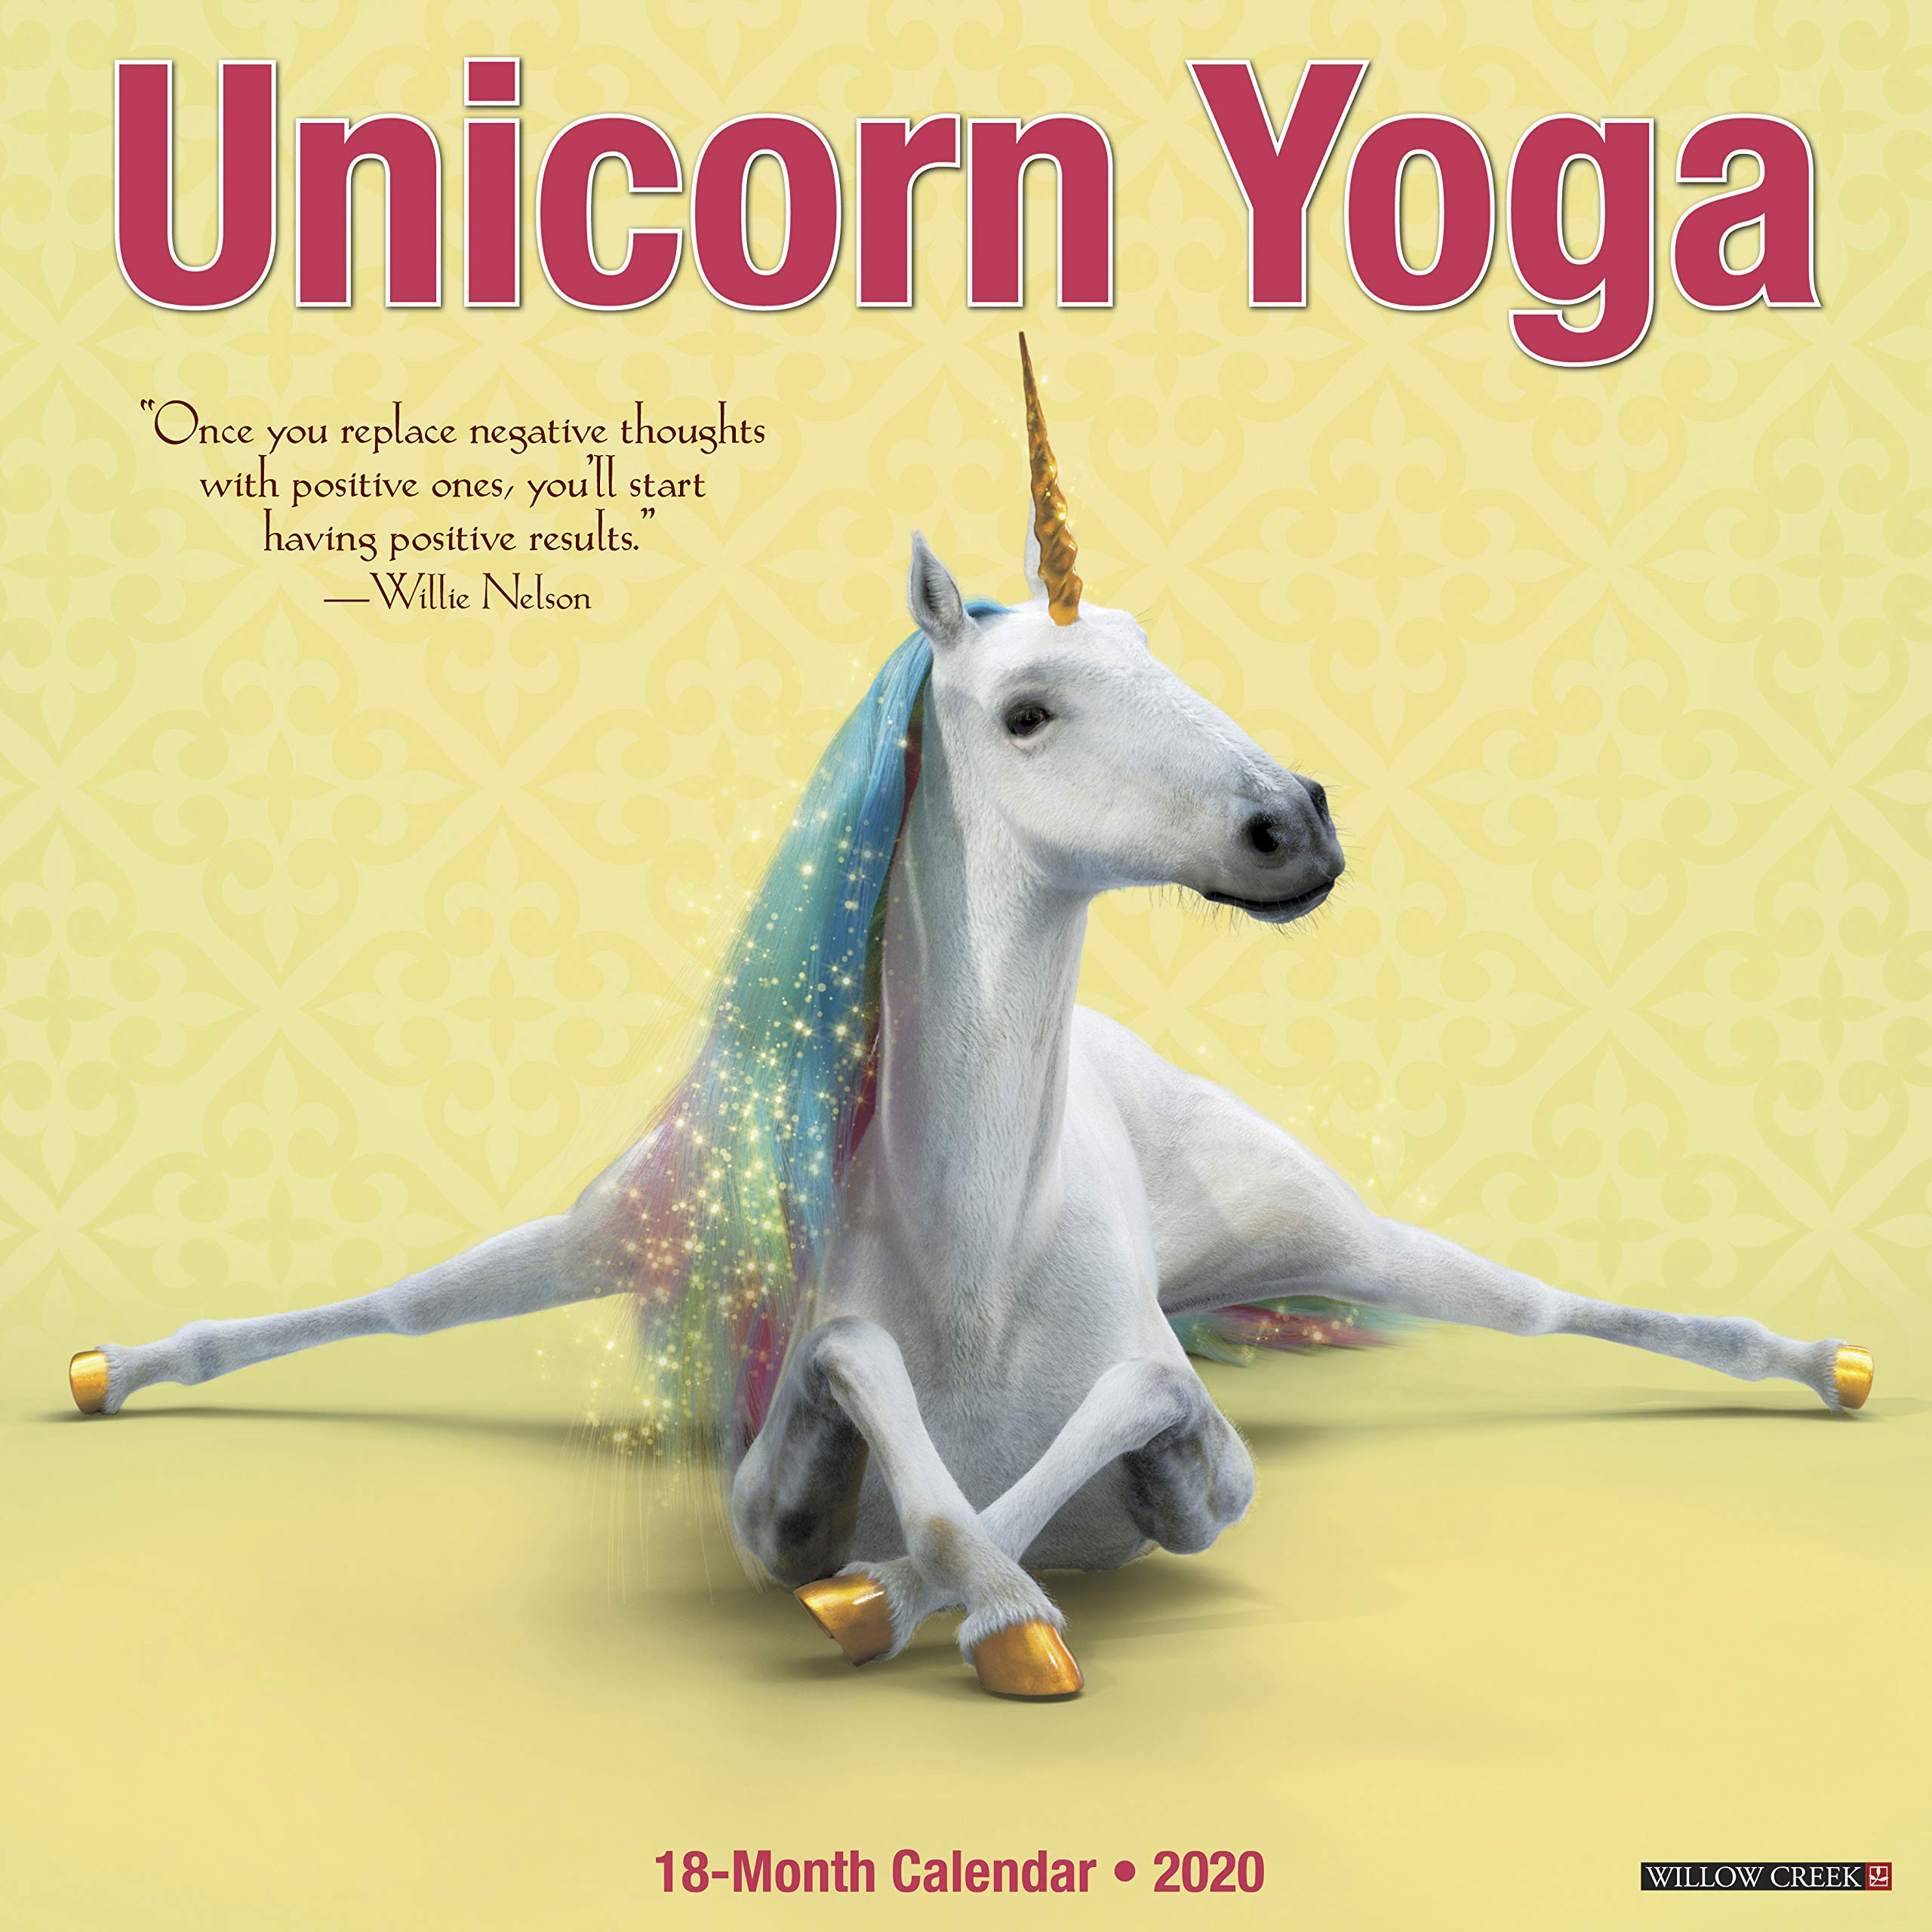 Unicorn Yoga 2020 Wall Calendar: Amazon.es: Willow Creek ...